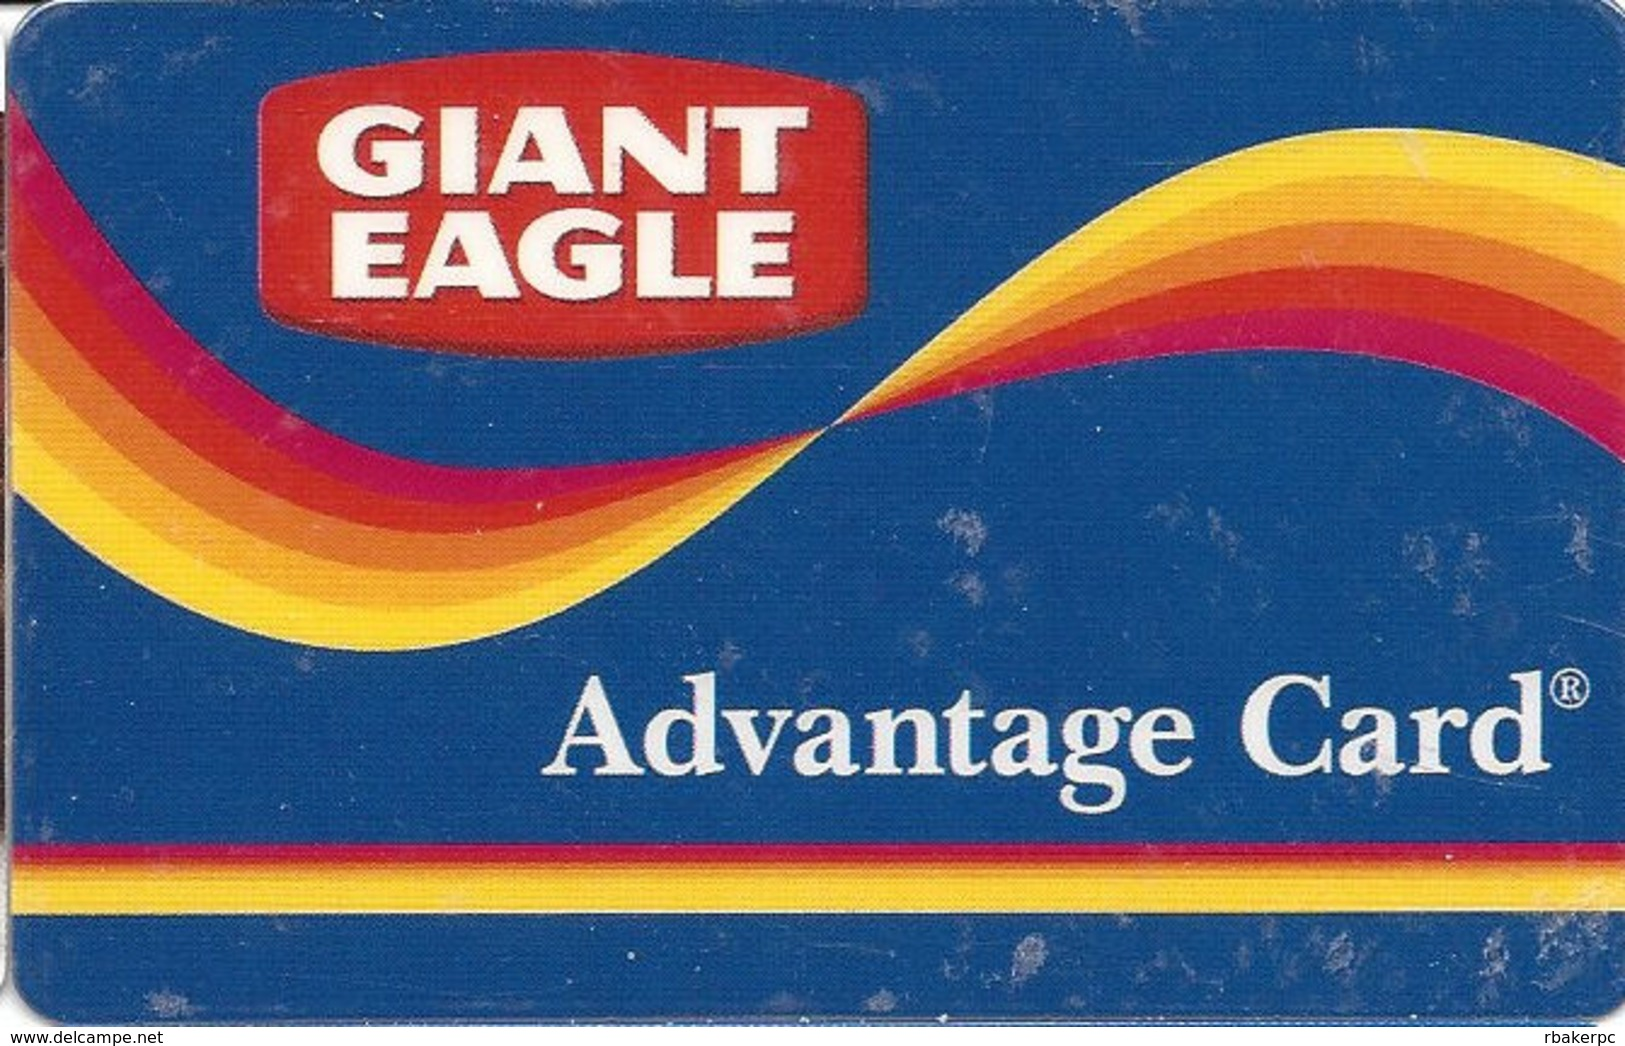 Giant Eagle Advantage Card - Customer Loyalty/Membership Card - Other Collections